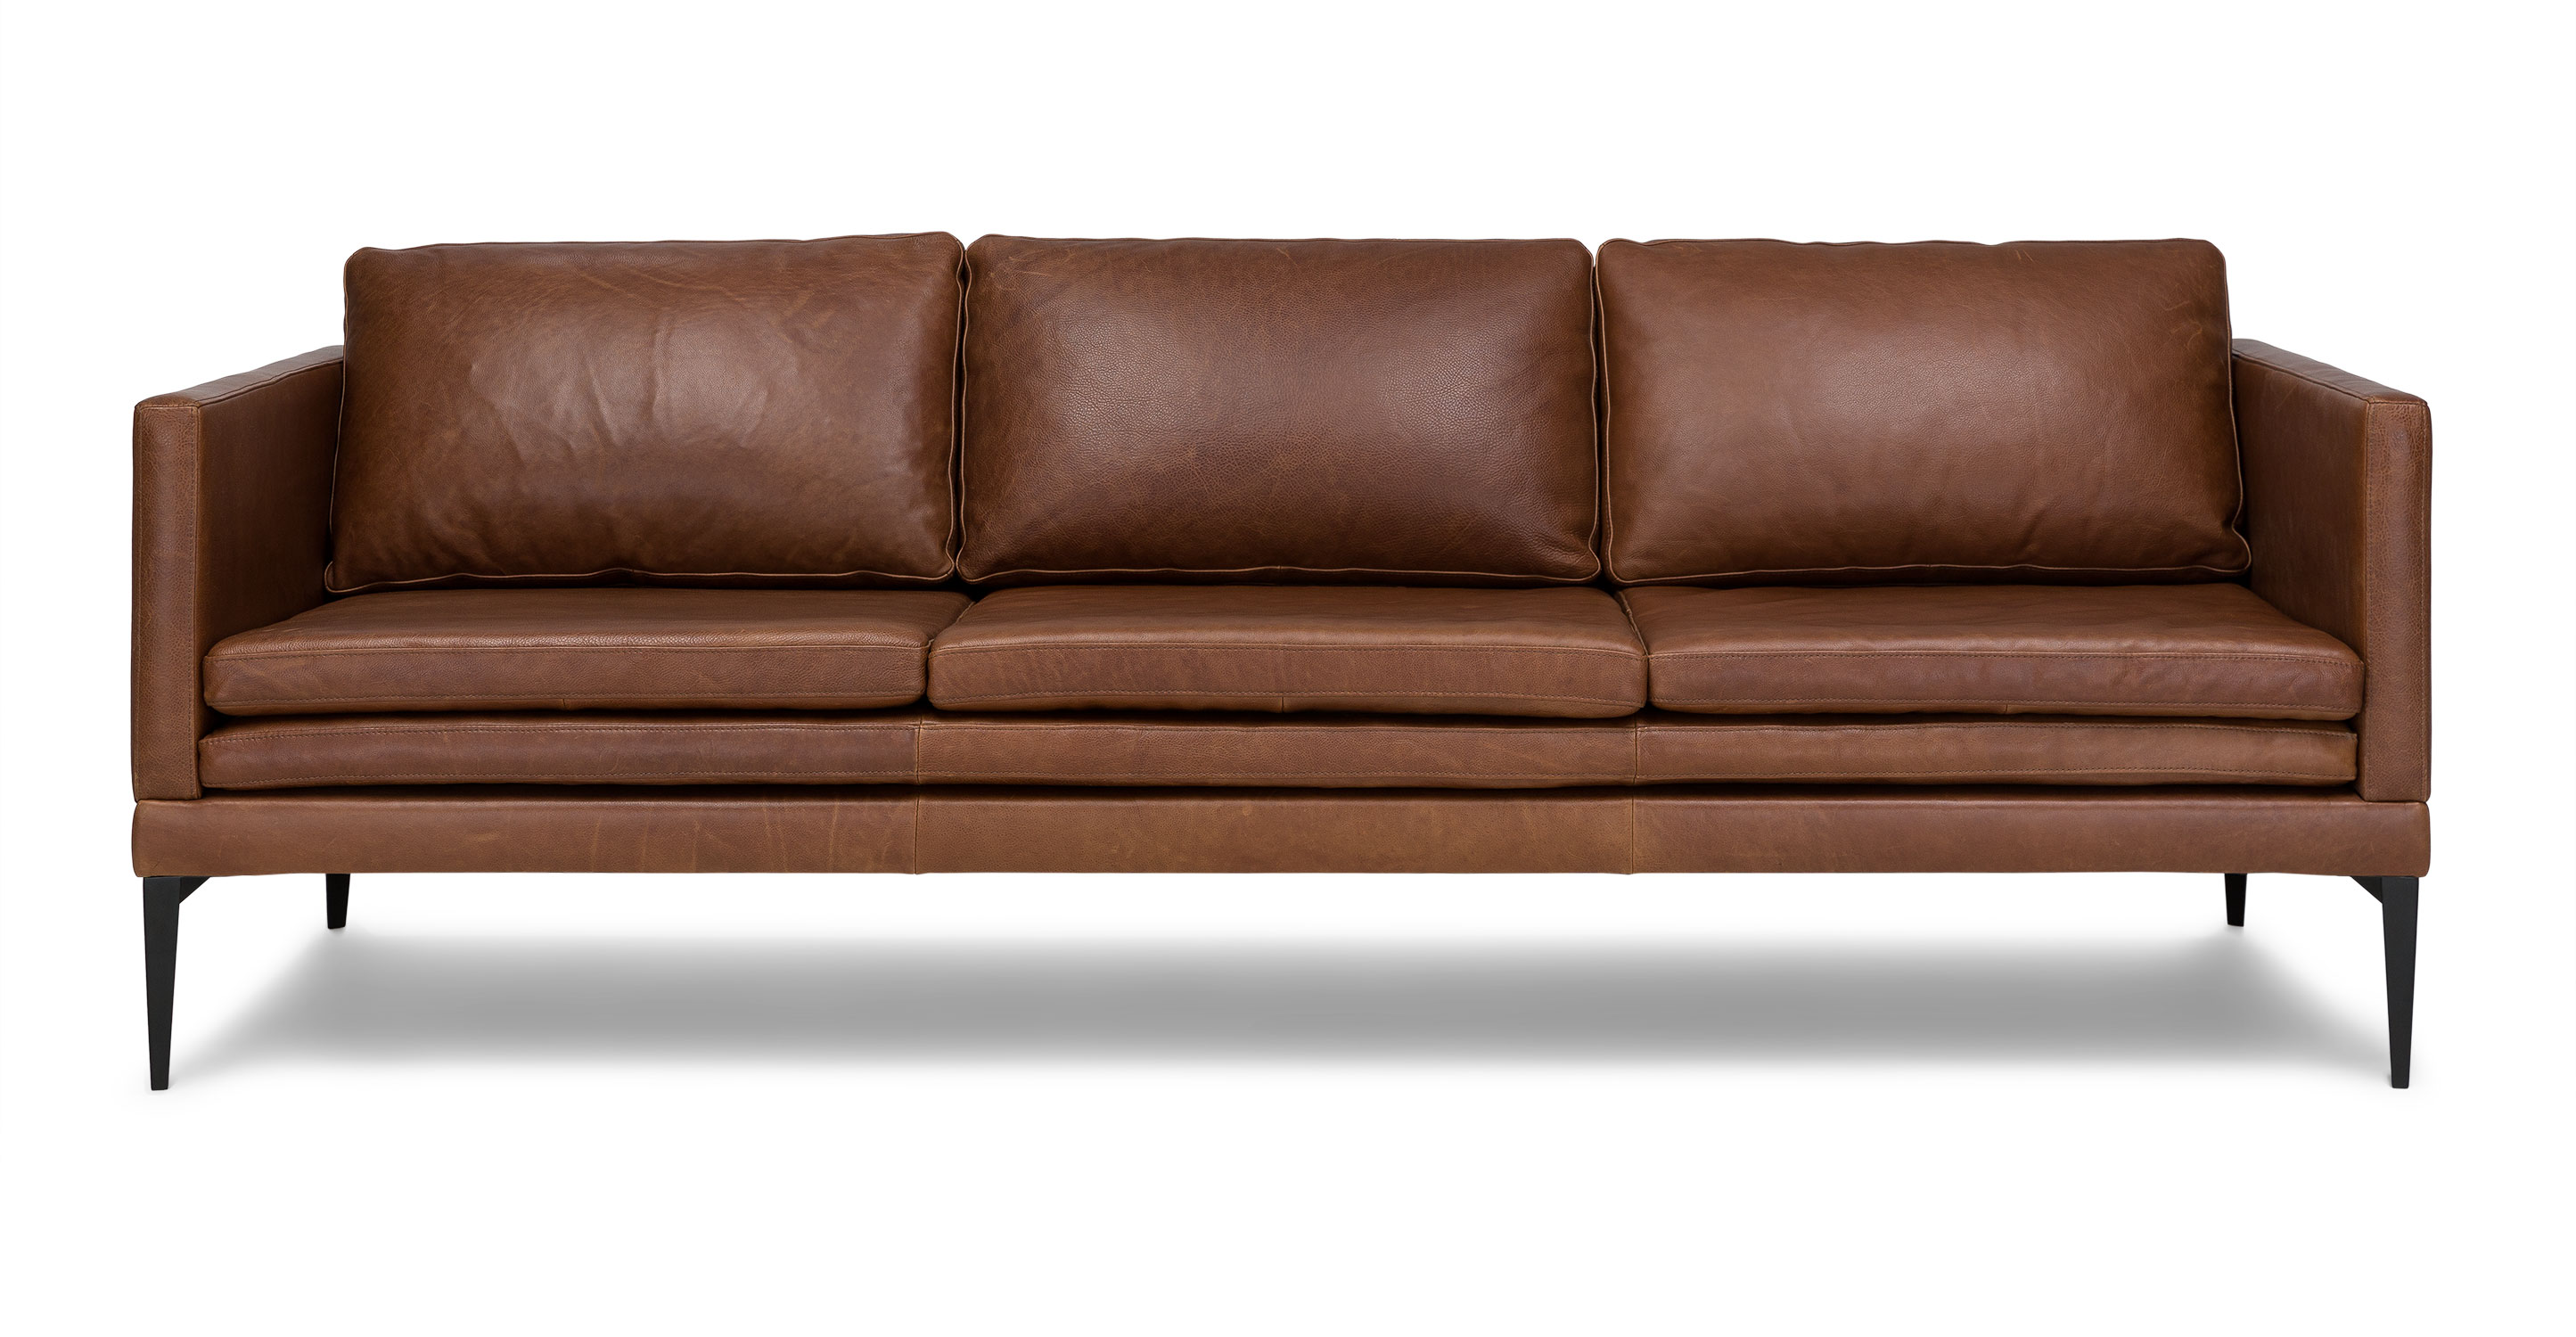 Captivating Brown Lear Couch Cheap Brown Lear Couch Mid Century Triplo Taos Brown Sofa Sofas Article Andscandinavian Furniture Triplo Taos Brown Sofa Sofas Article houzz-03 Brown Leather Couch